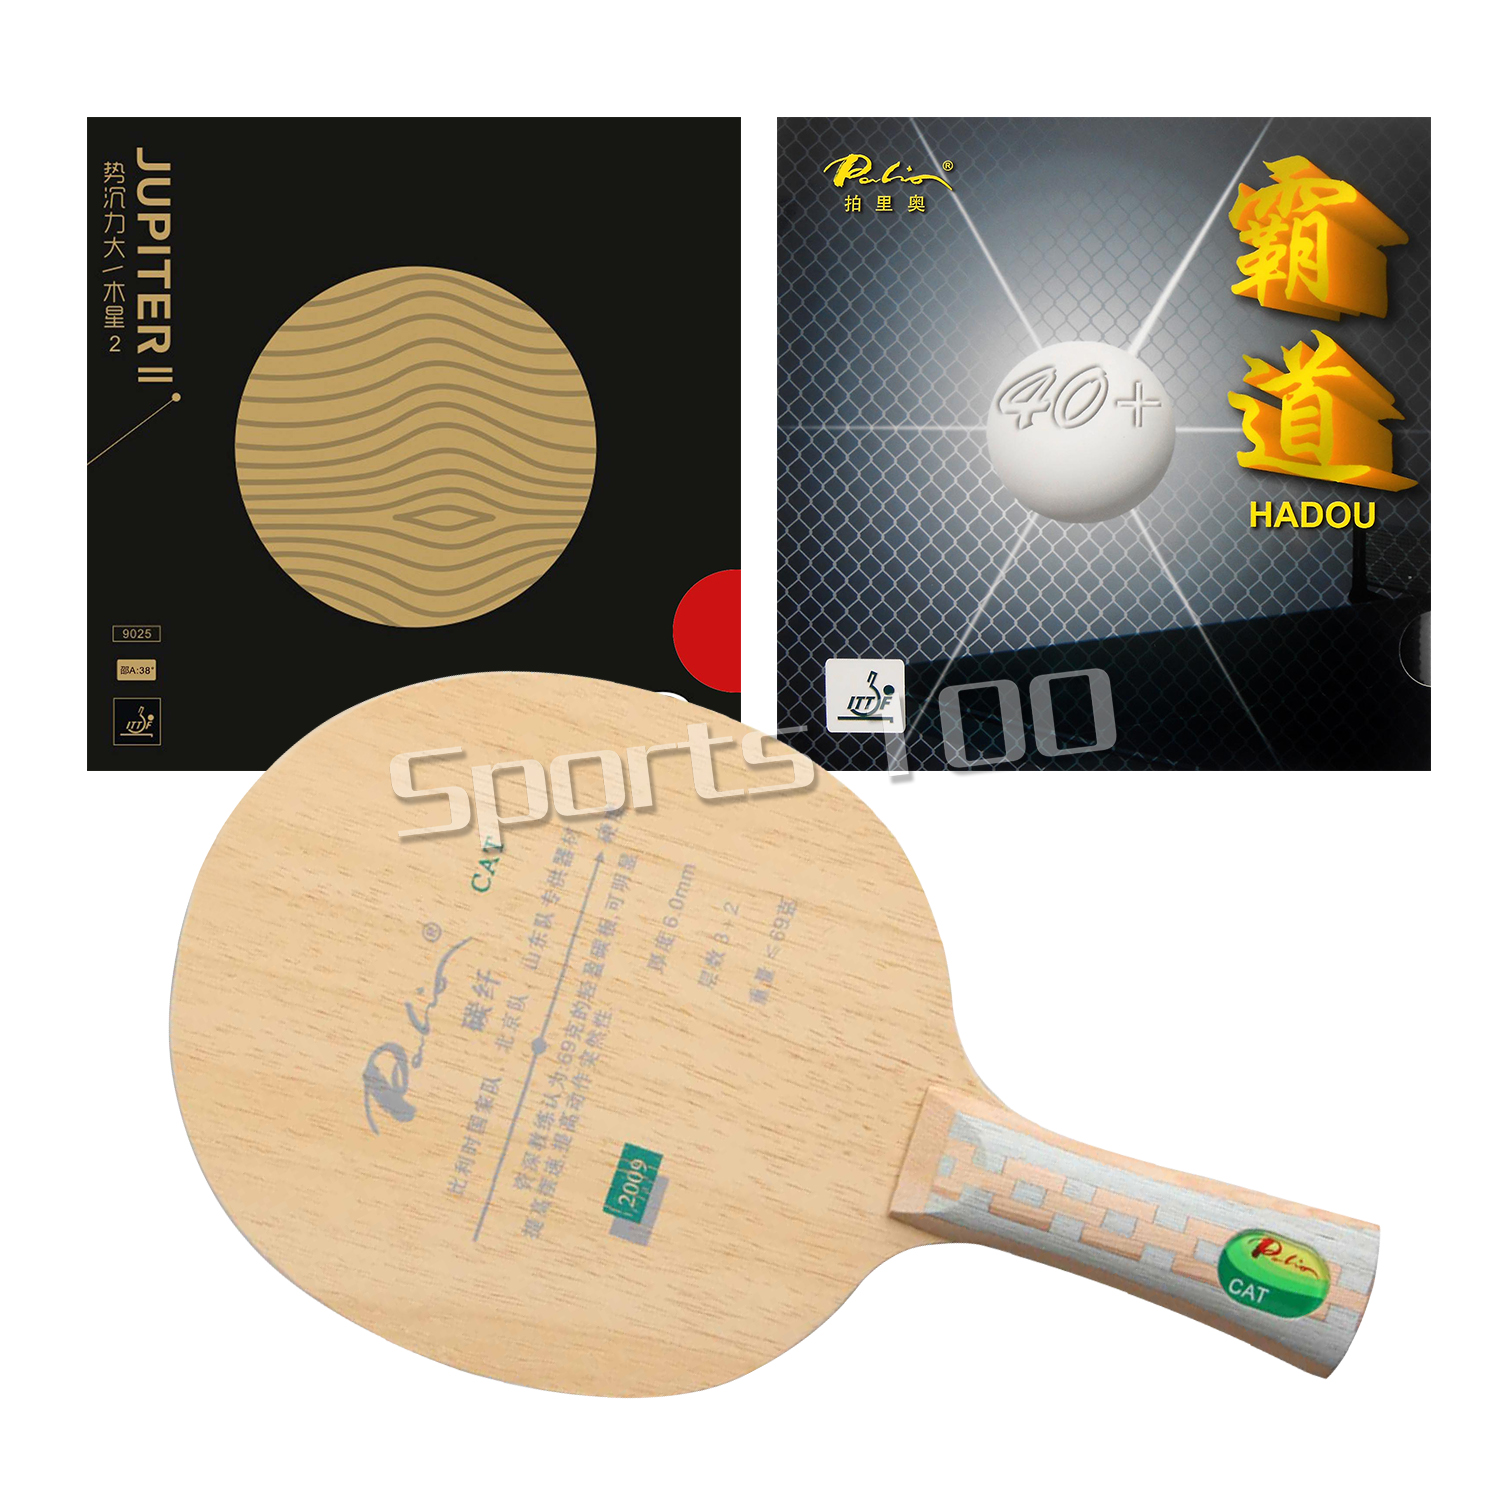 Pro Combo Racket Palio Official CAT Table Tennis Blade With  Palio HADOU 40+ And  Yinhe JUPITER II Rubbers